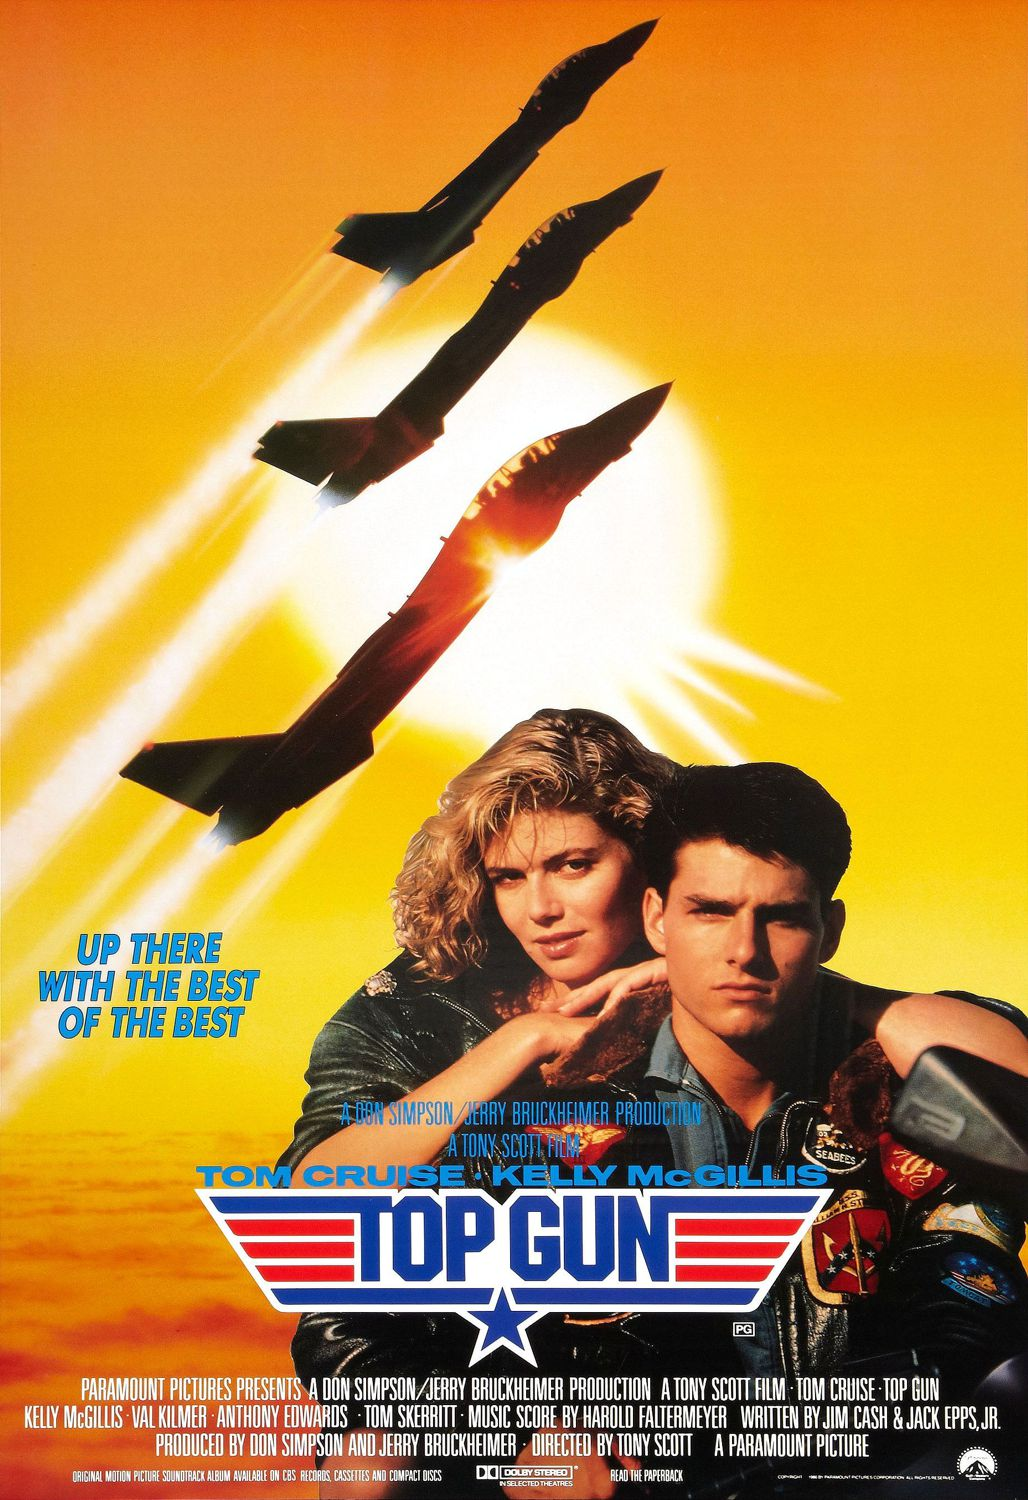 TopGun (1986, Dir. Tony Scott)